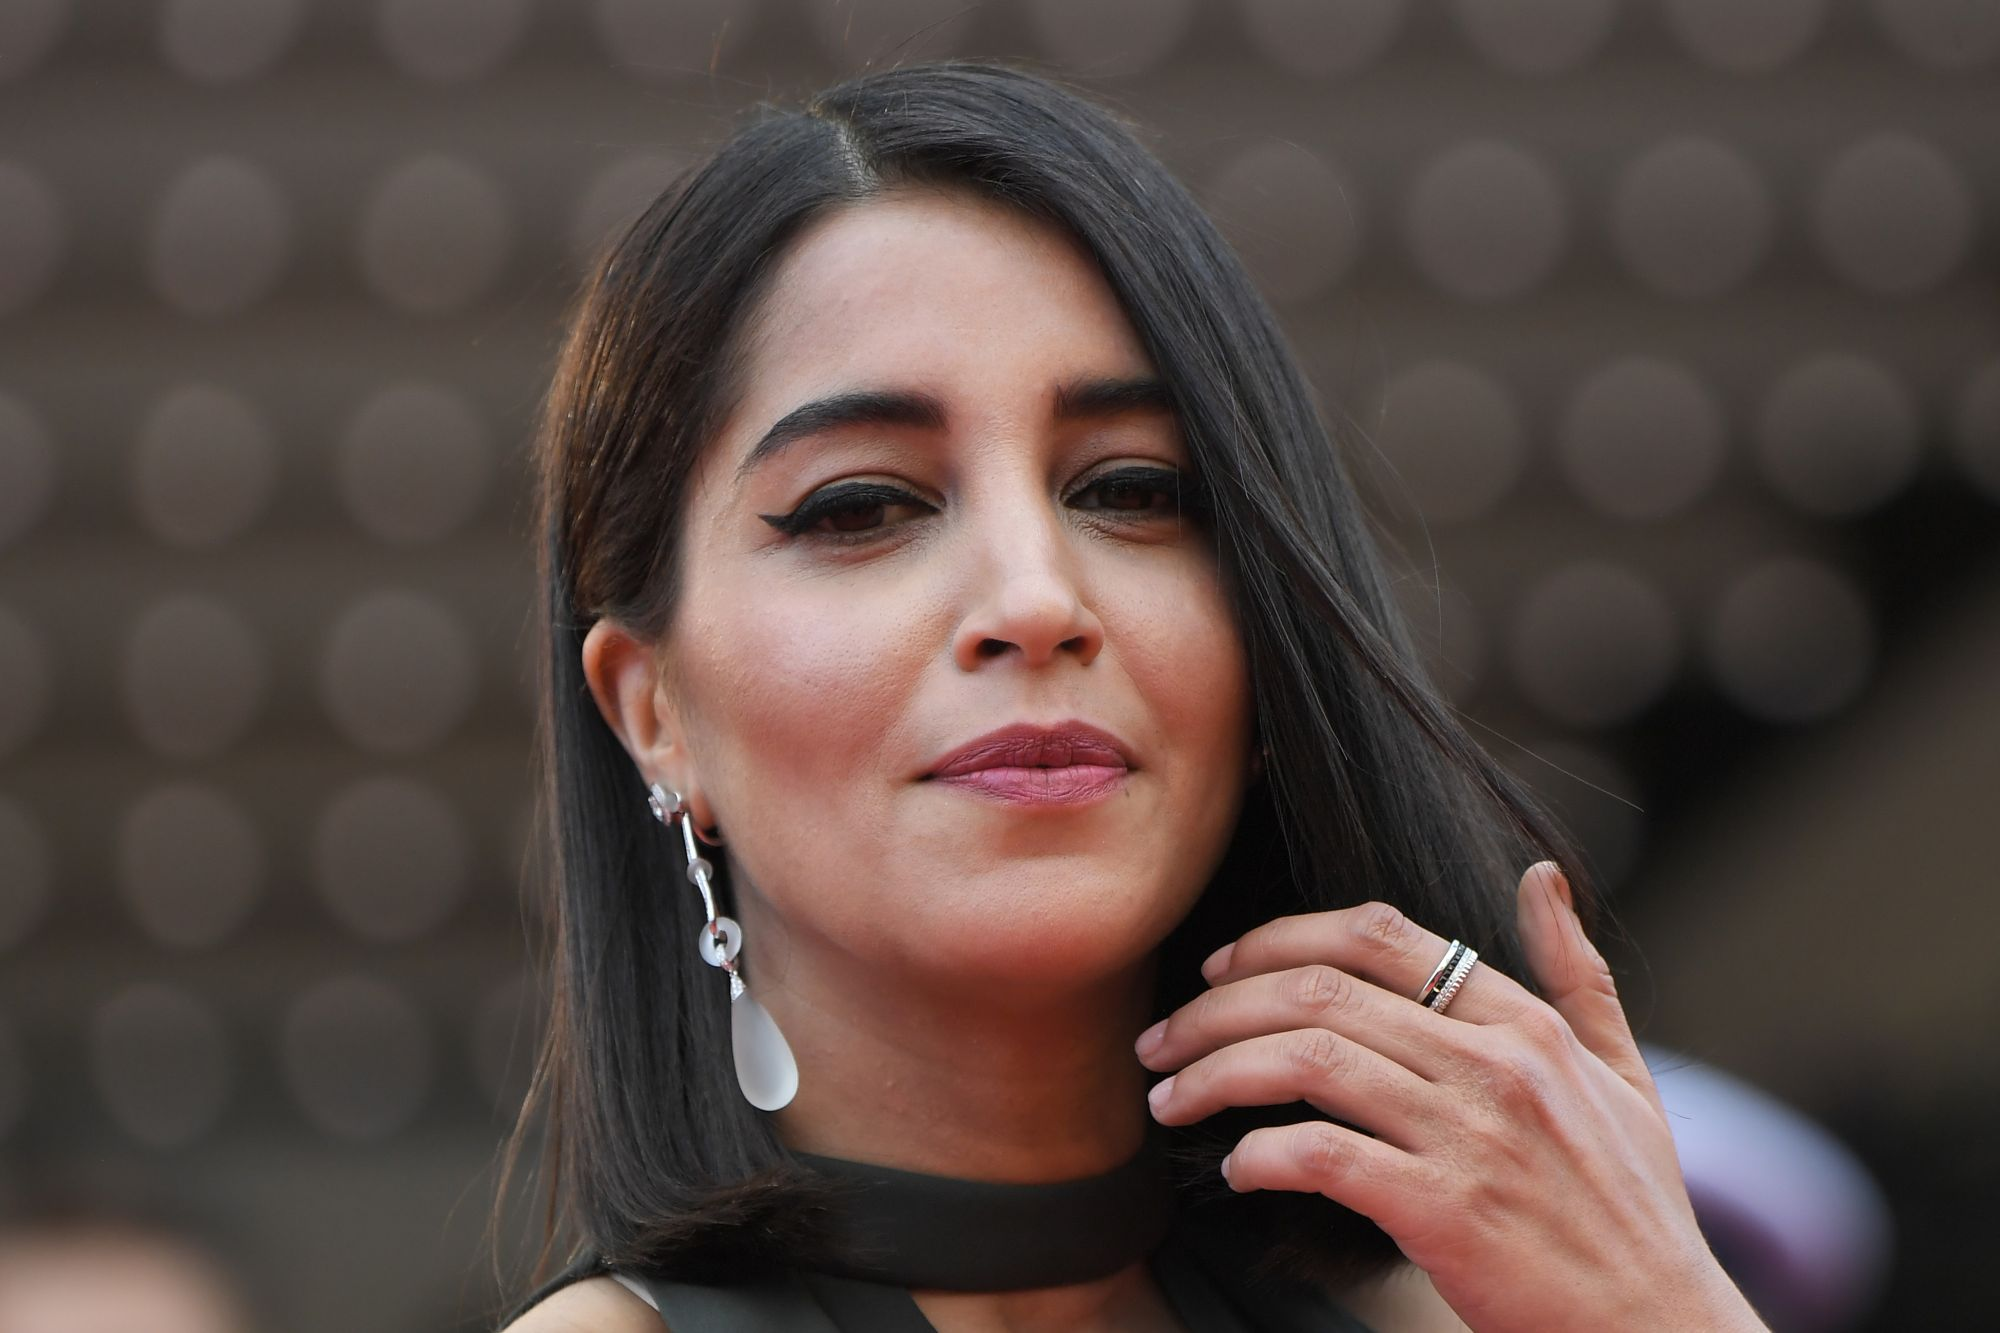 French actress Leïla Bekhti walked the red carpet in a black dress, accessorized with Boucheron 'Gouttes' pendant earrings made of rock crystal, white gold and diamonds.